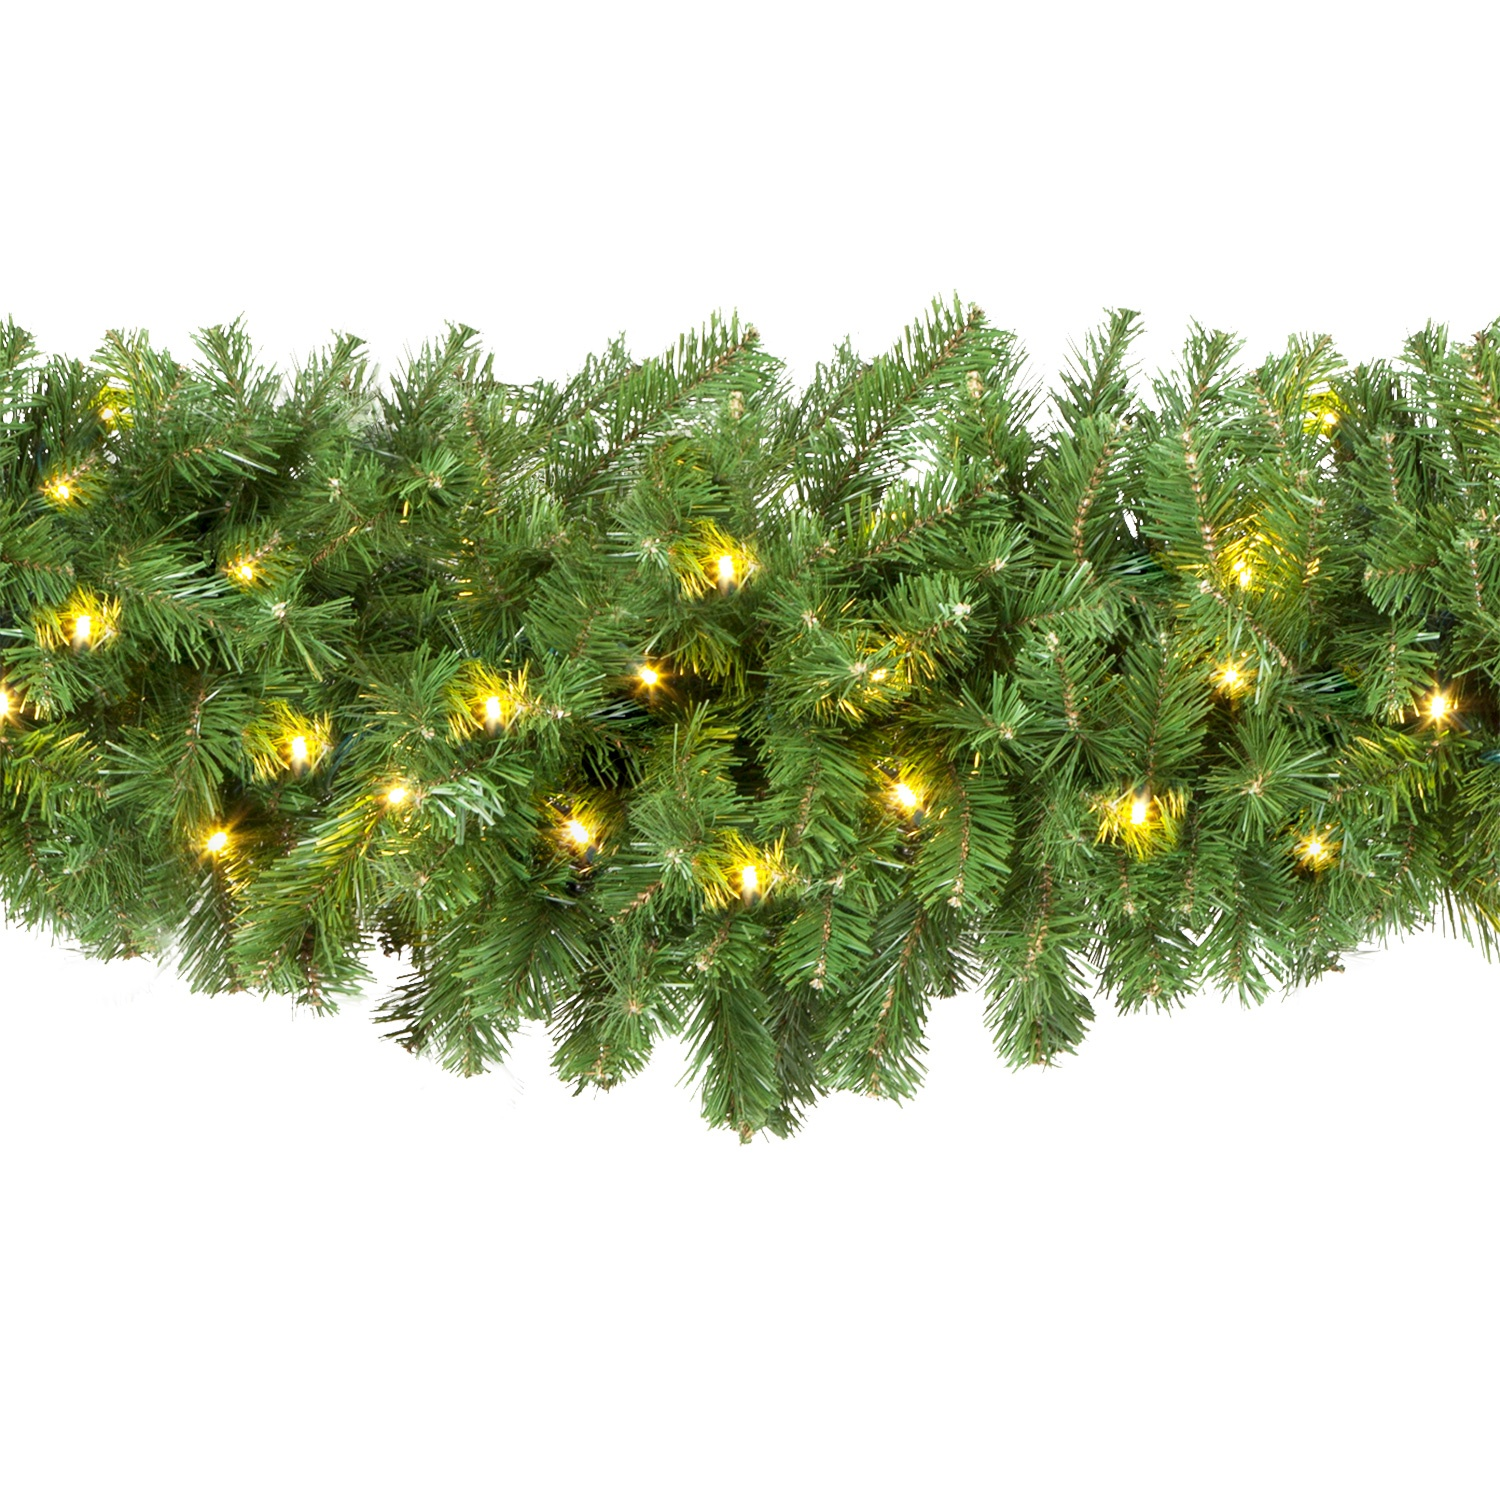 Olympia Pine Prelit Commercial Led Swag Christmas Garland Warm White Lights